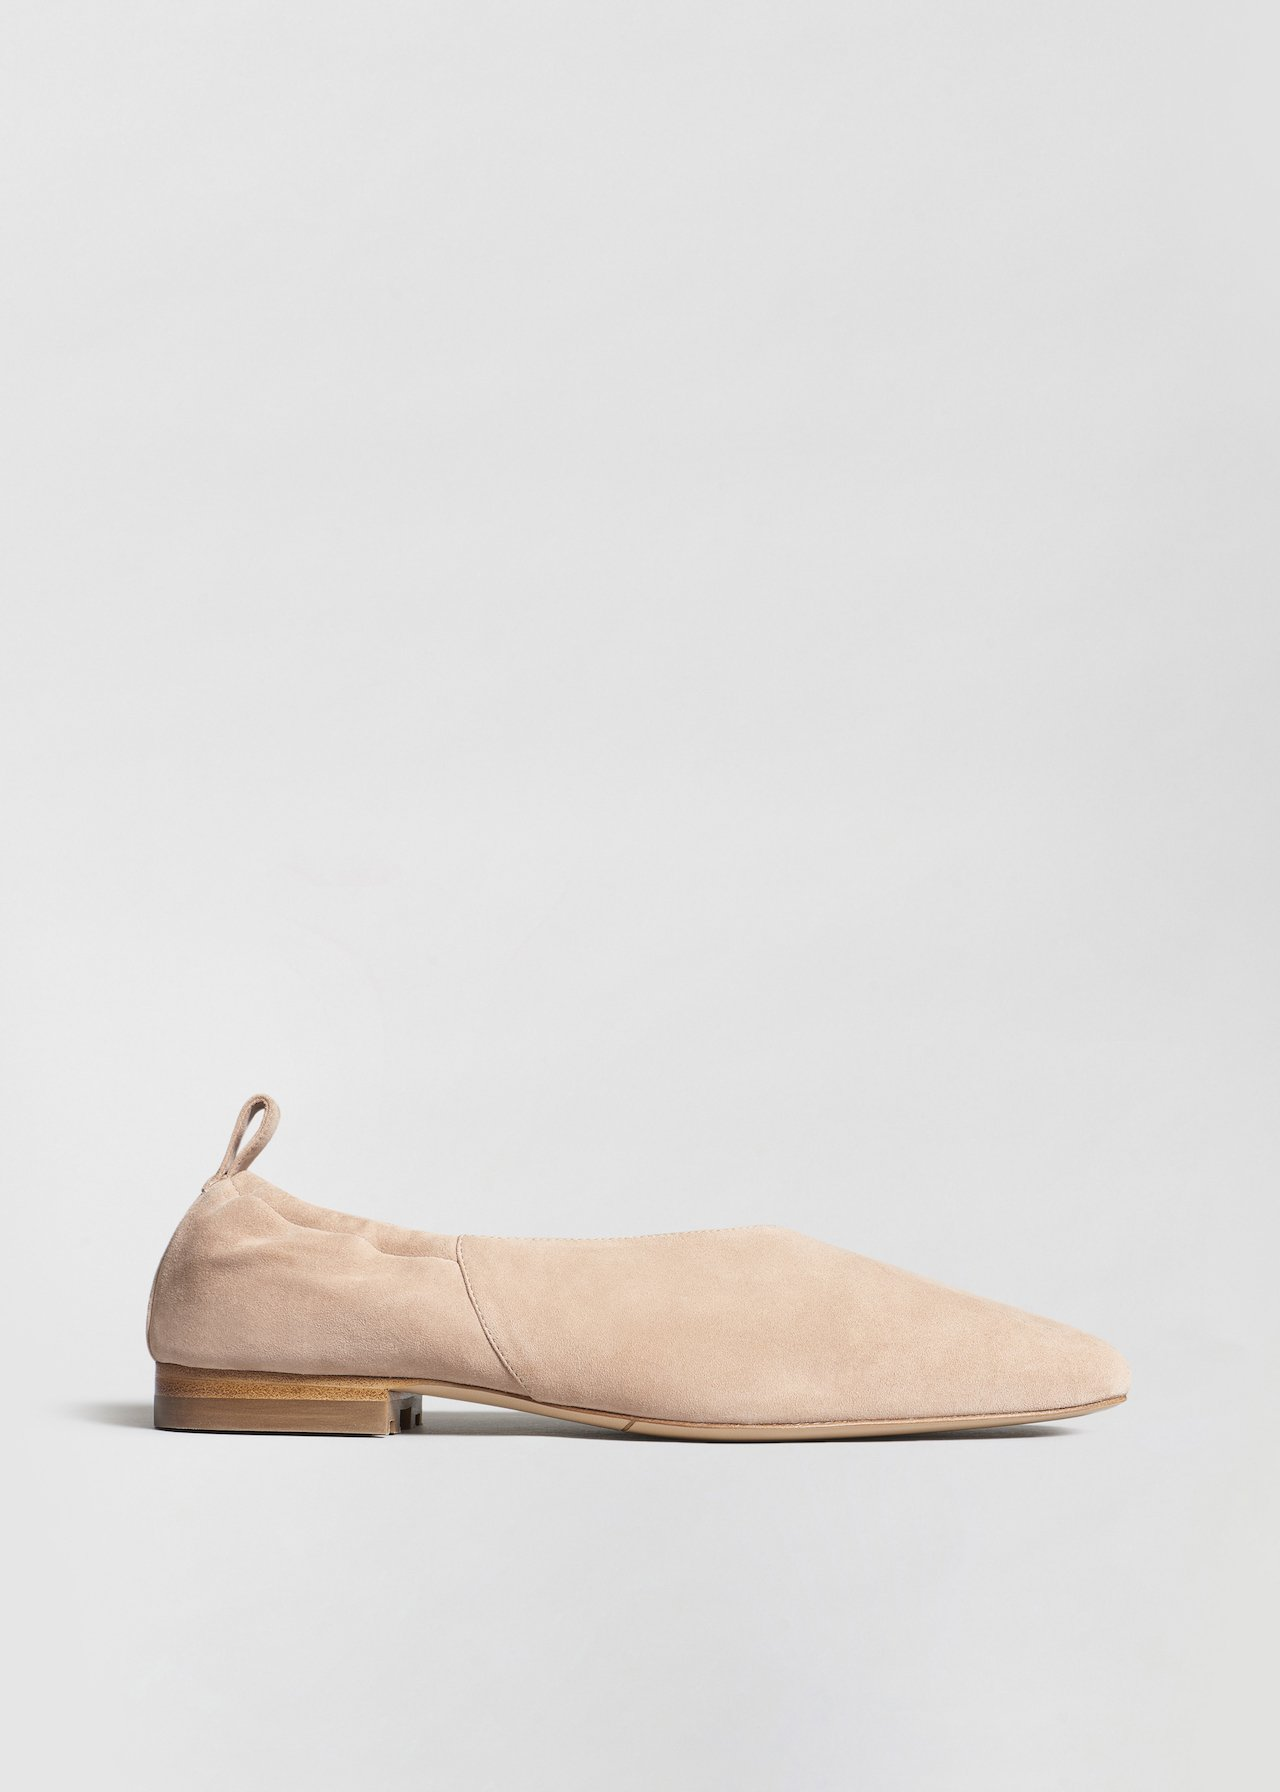 Ballet Flat in Suede - Olive in Sand by Co Collections